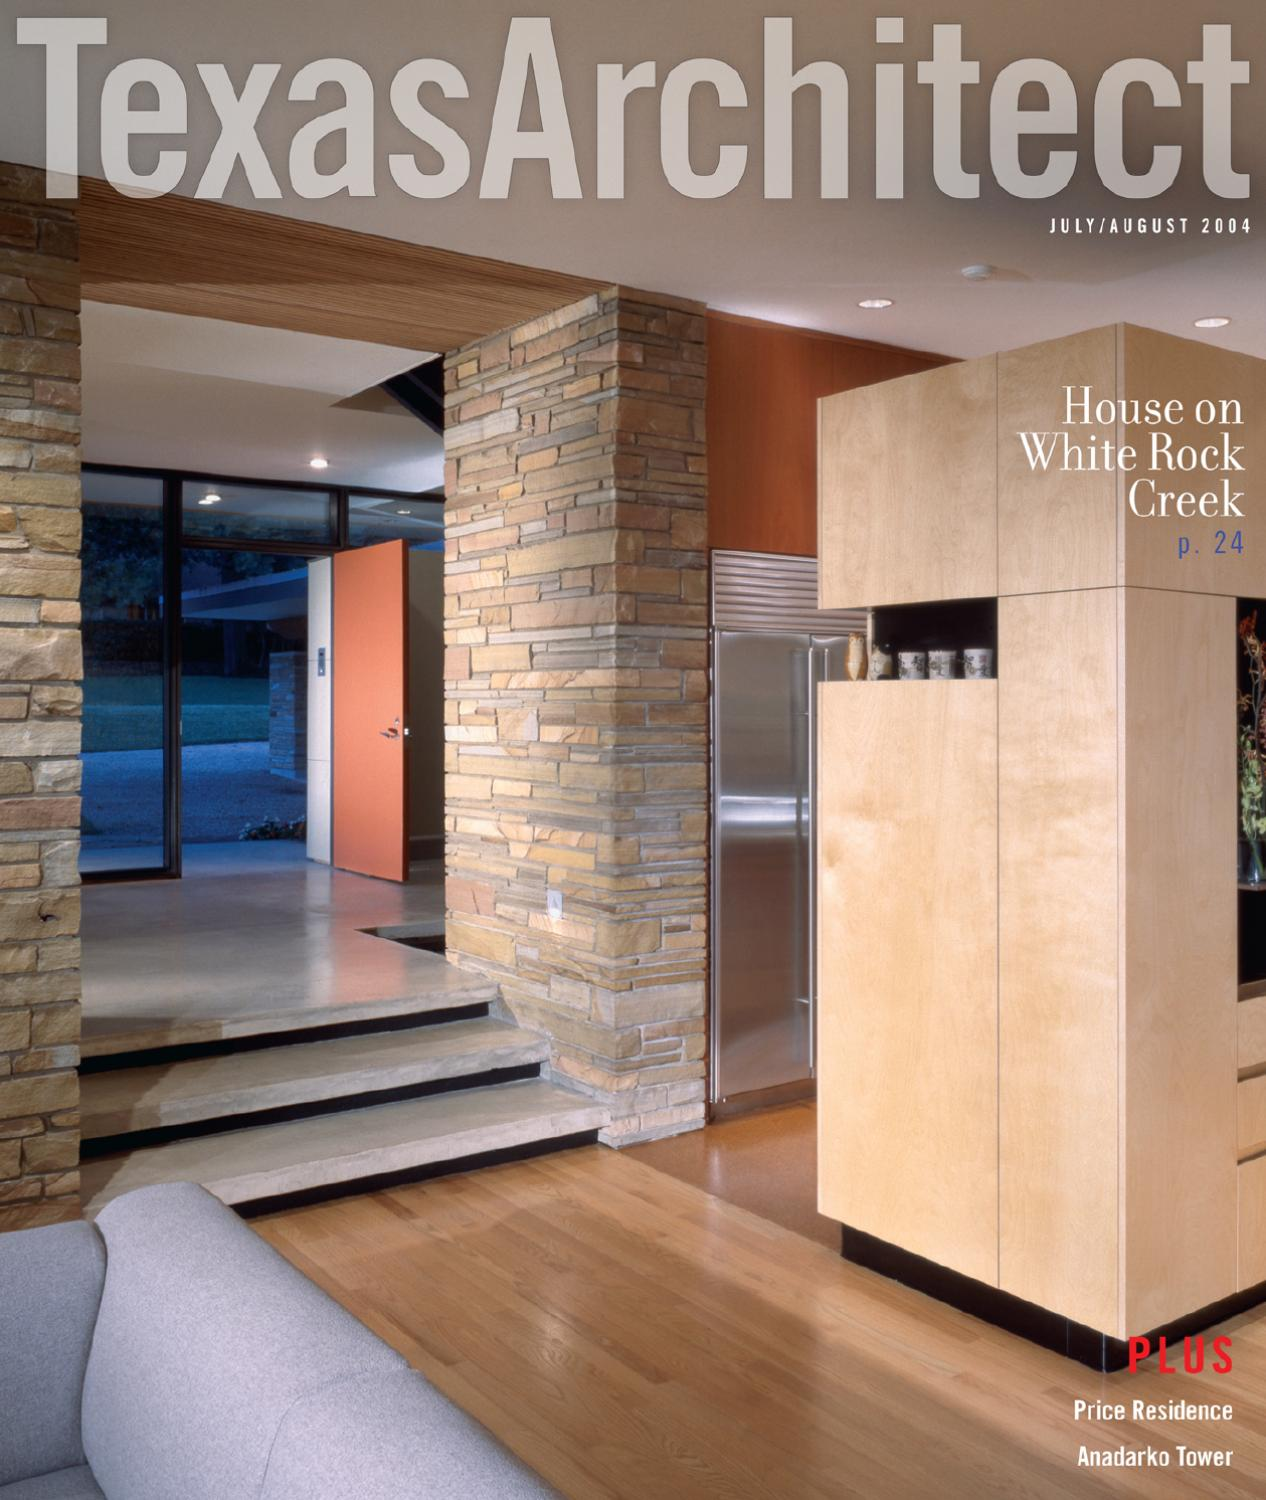 Texas Architect July/Aug 2004 By Texas Society Of Architects   Issuu